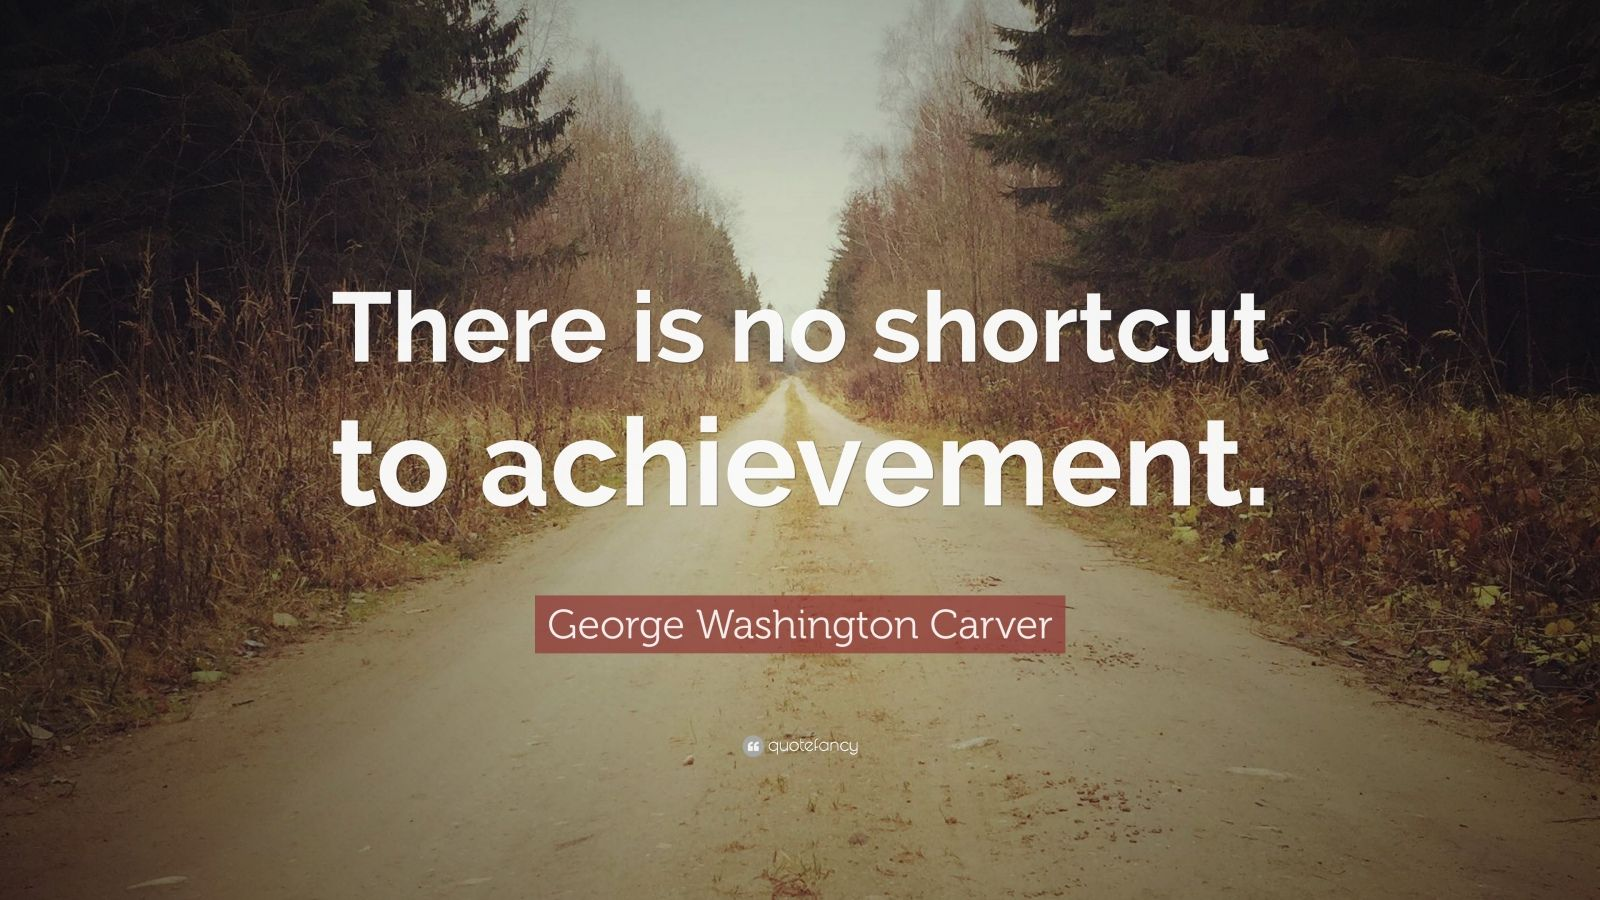 Good Morning Wallpaper With Motivational Quotes George Washington Carver Quote There Is No Shortcut To